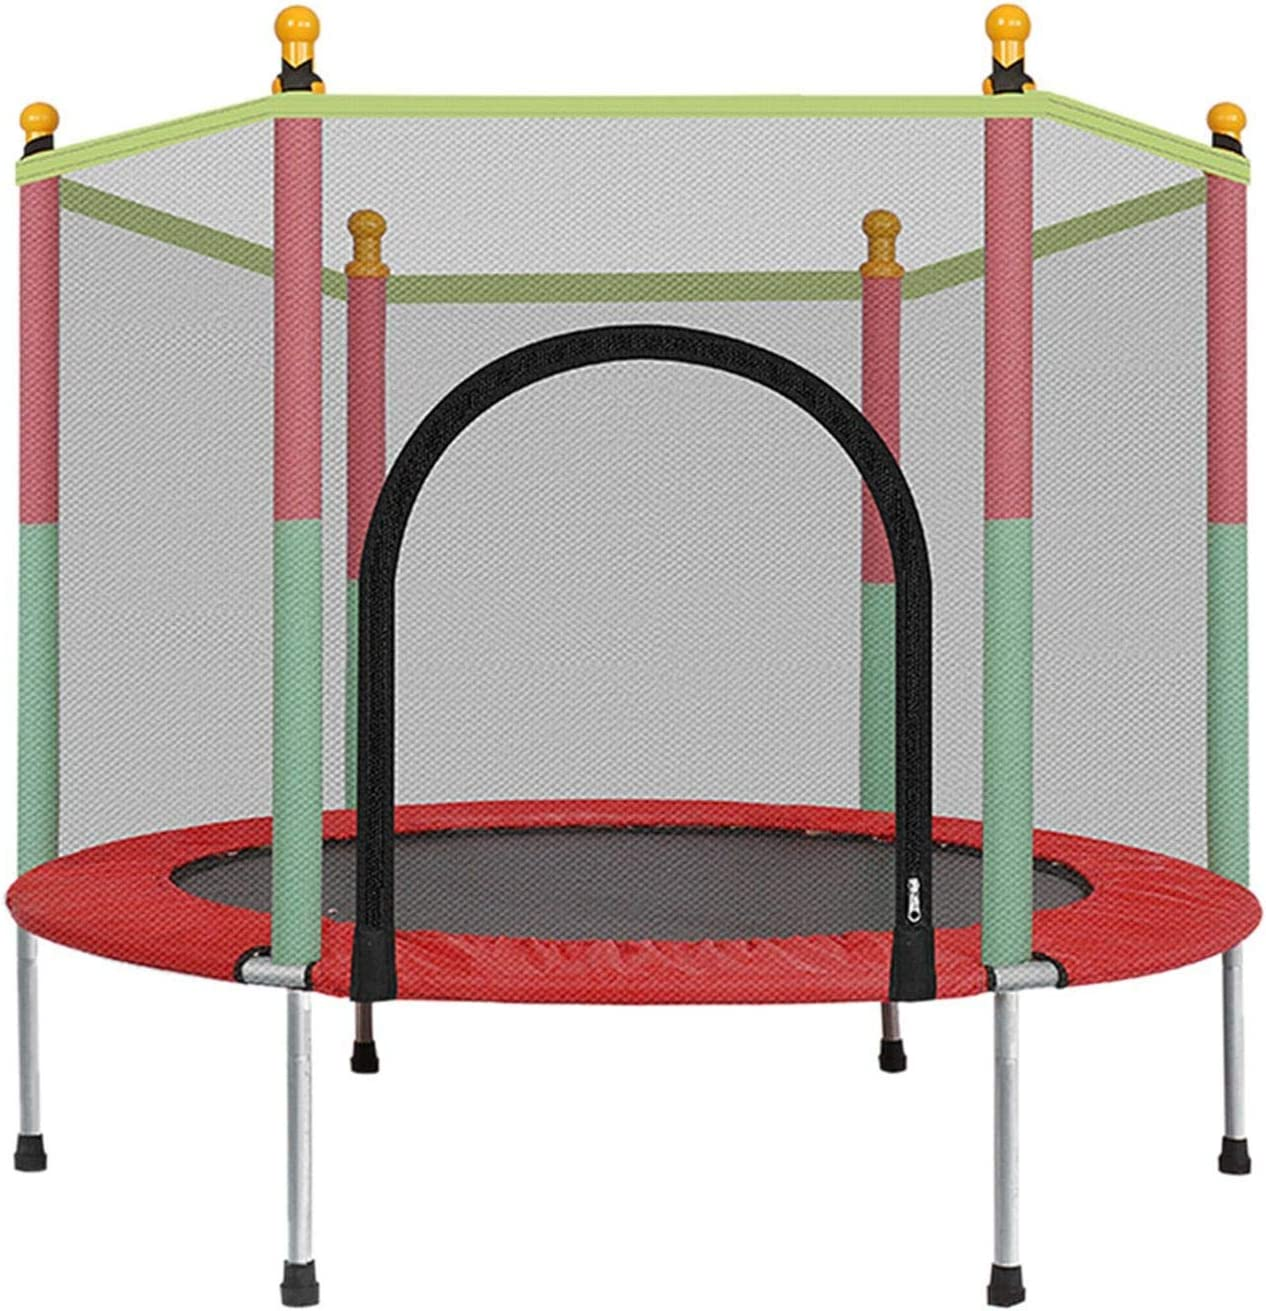 Trampoline for Kids Indoor Outdoor 5FT Kids Trampoline with Enclosure Net Jumping Mat and Spring Cover Padding